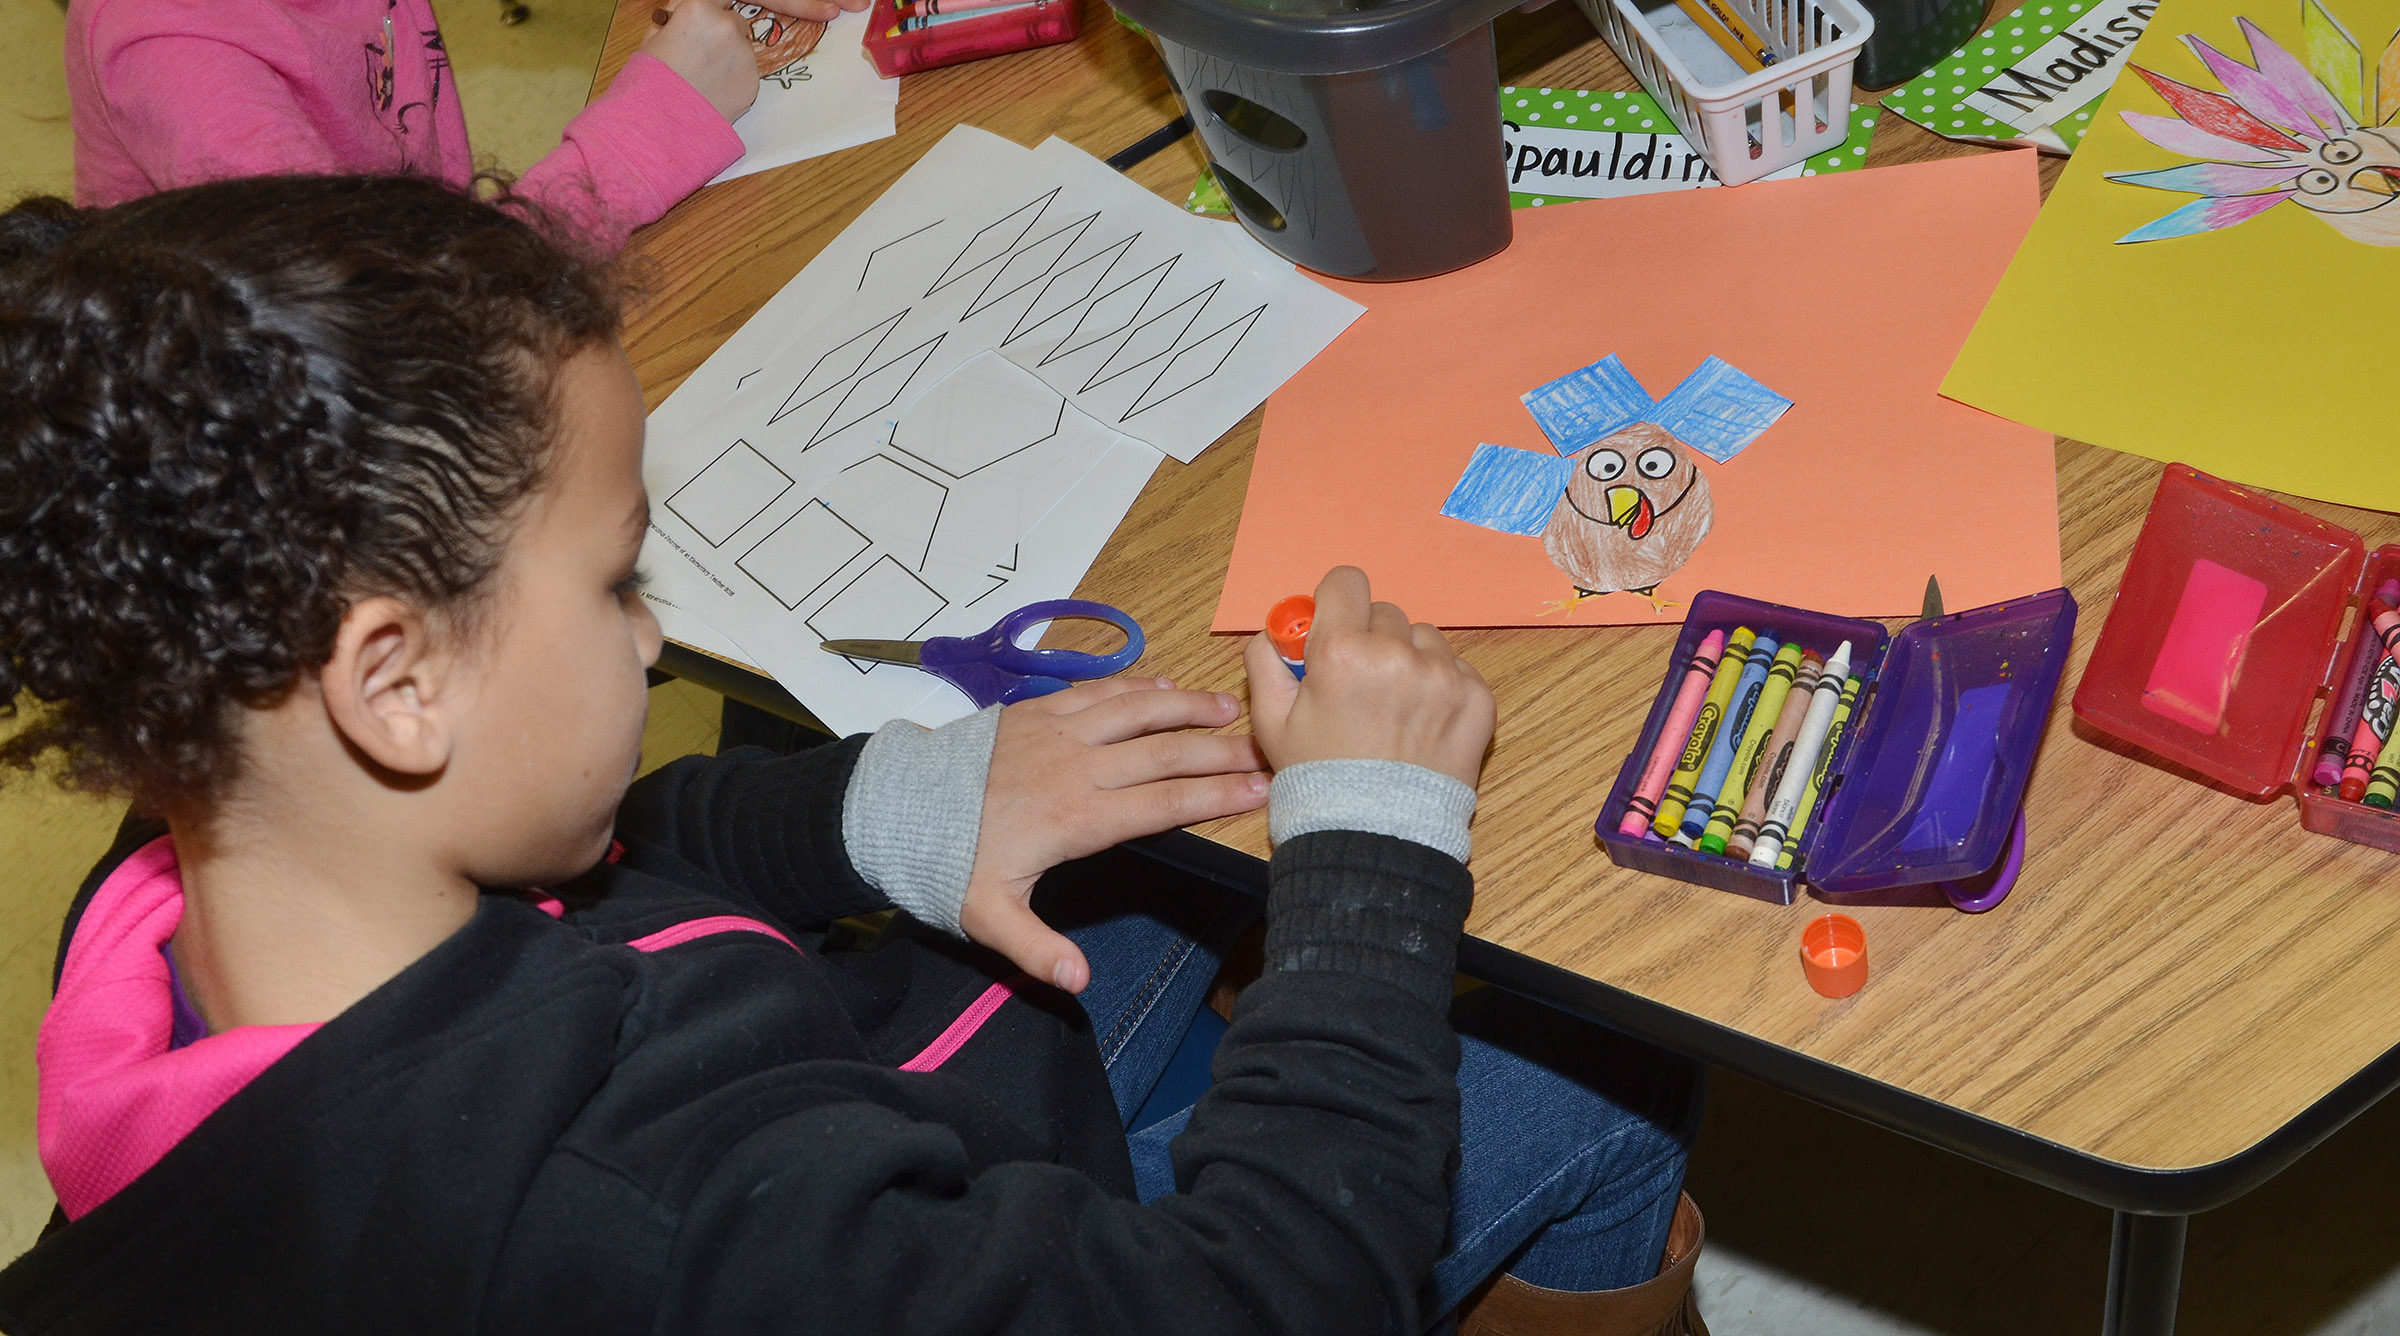 CES first-grader Aleeya Spaulding clues shapes together to create turkey feathers.